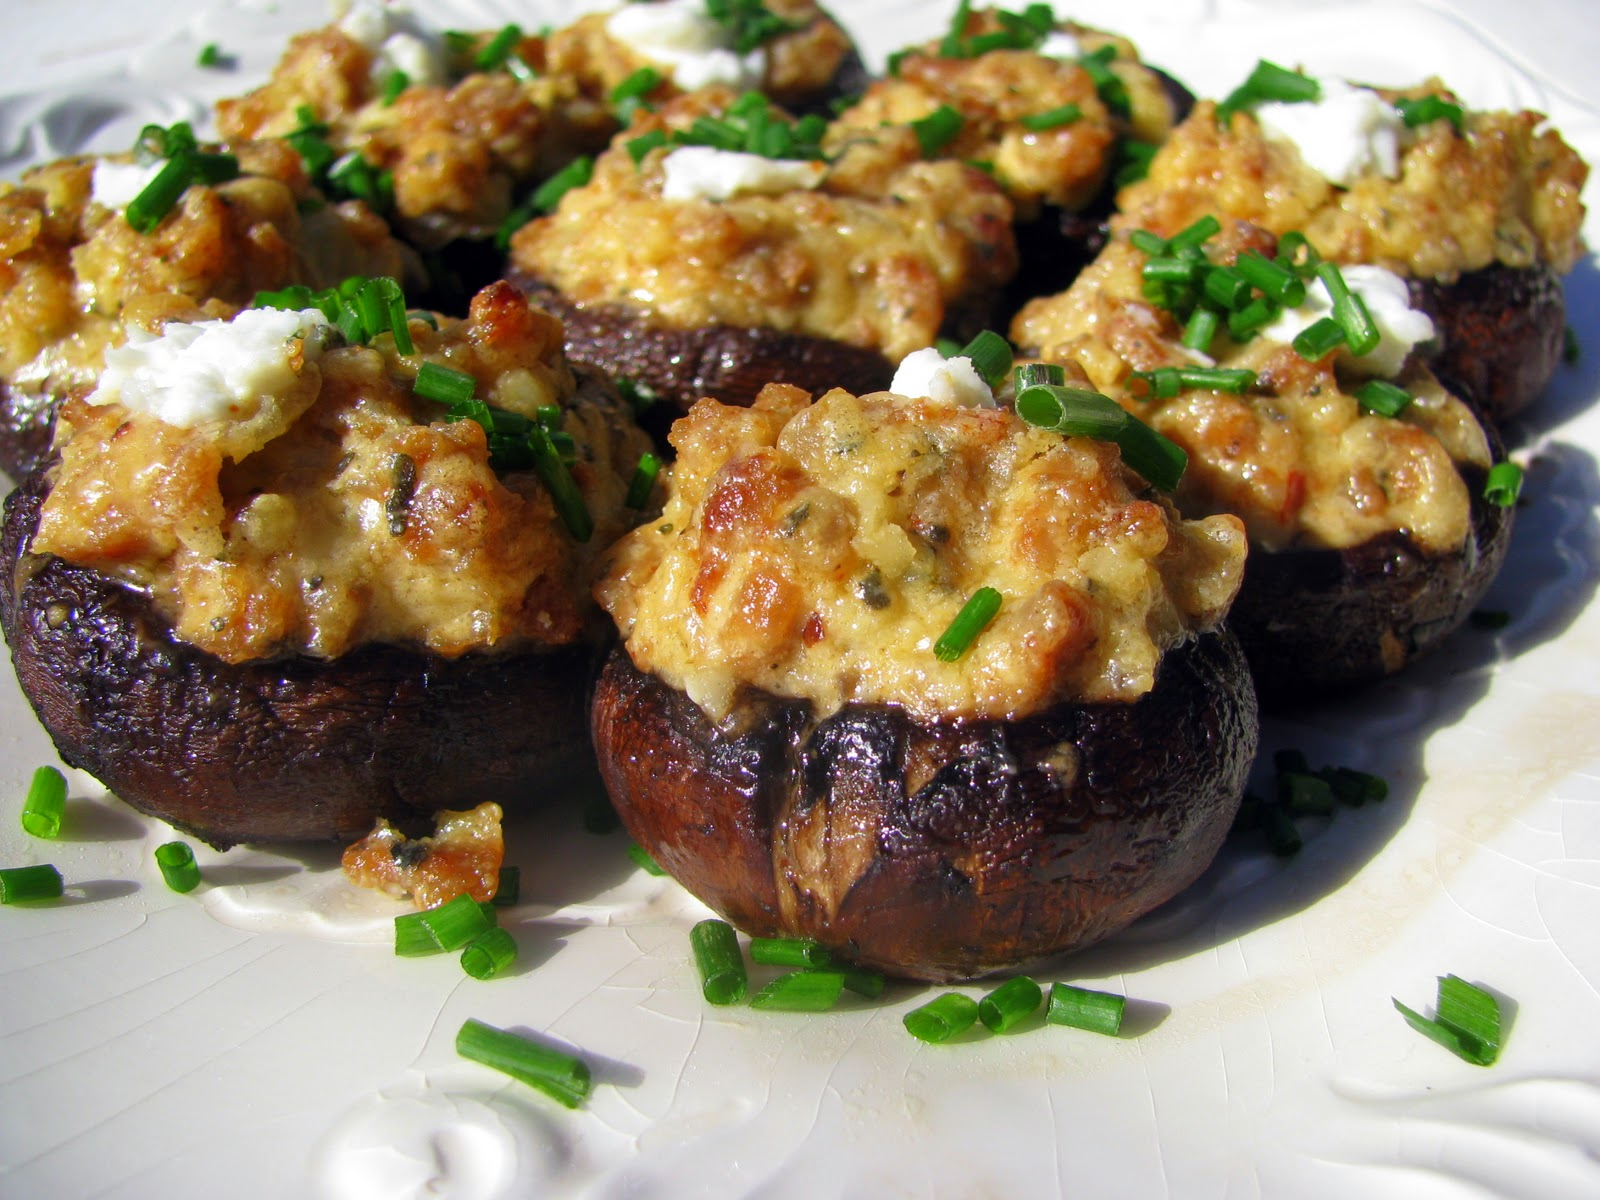 ... these look delicious! They are.... Stuffed Mushrooms are the best